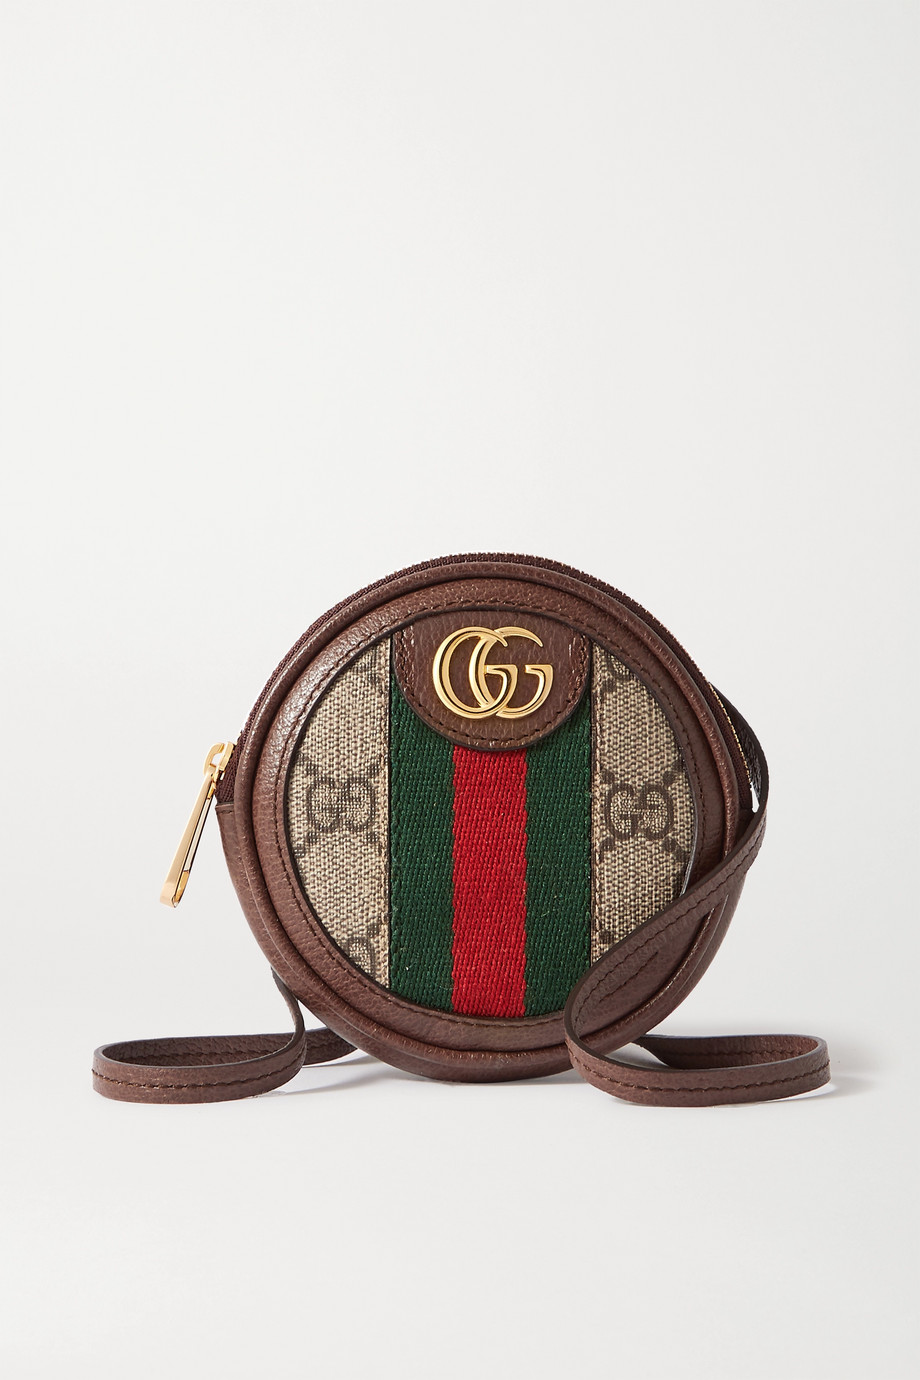 Gucci Ophidia Circle mini textured leather-trimmed printed coated-canvas shoulder bag